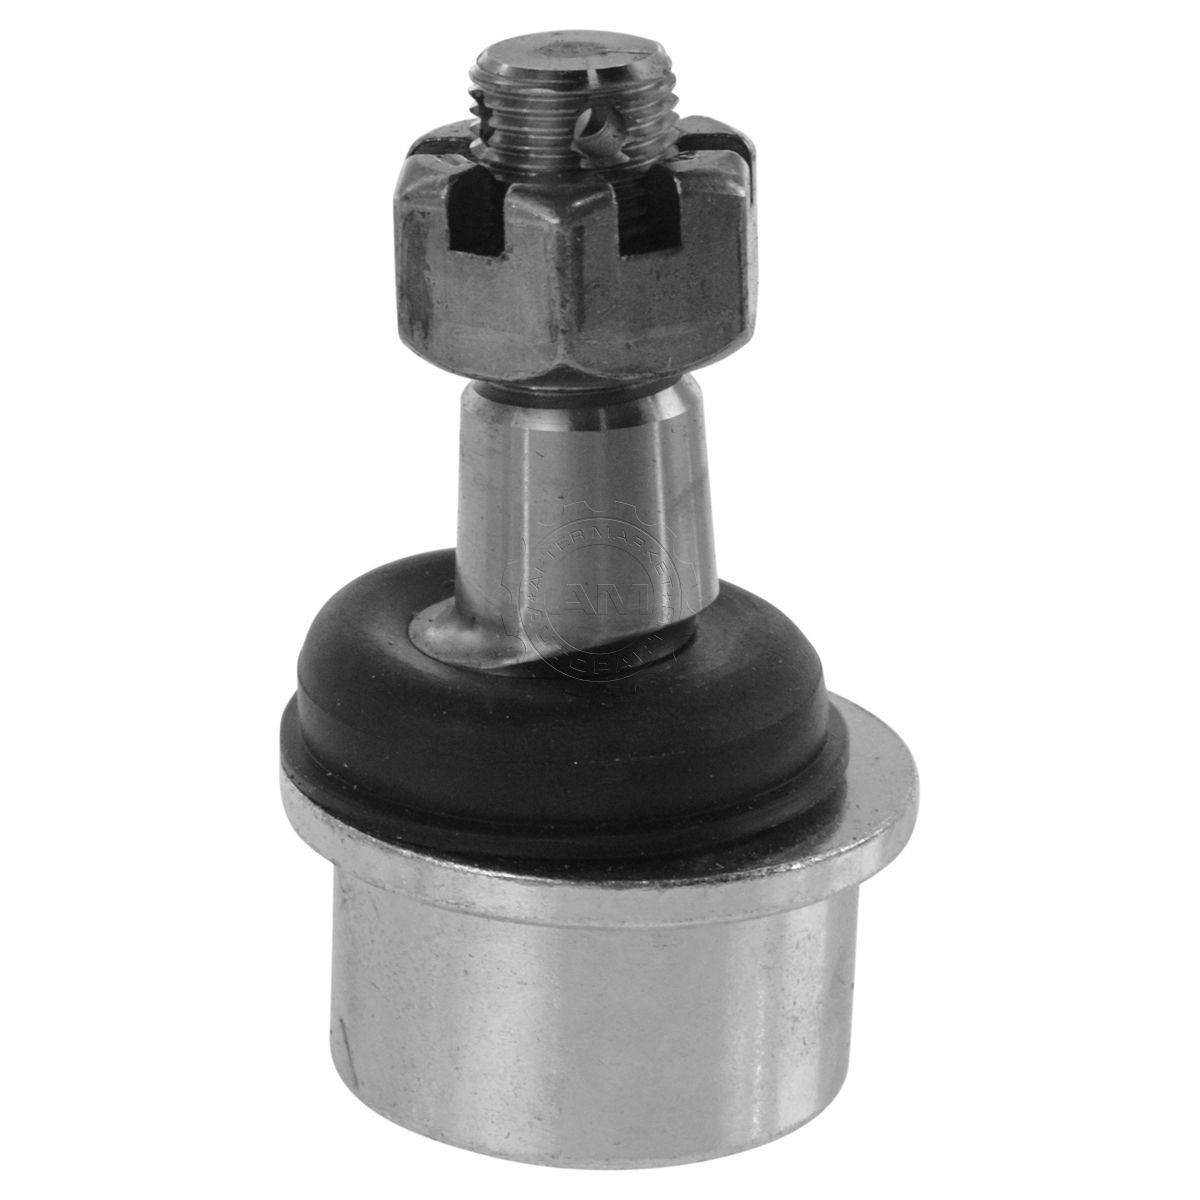 Moog Front Lower Suspension Ball Joint Fits 1994 1999: MOOG K7403 Front Lower Adjustable Ball Joint For Jeep